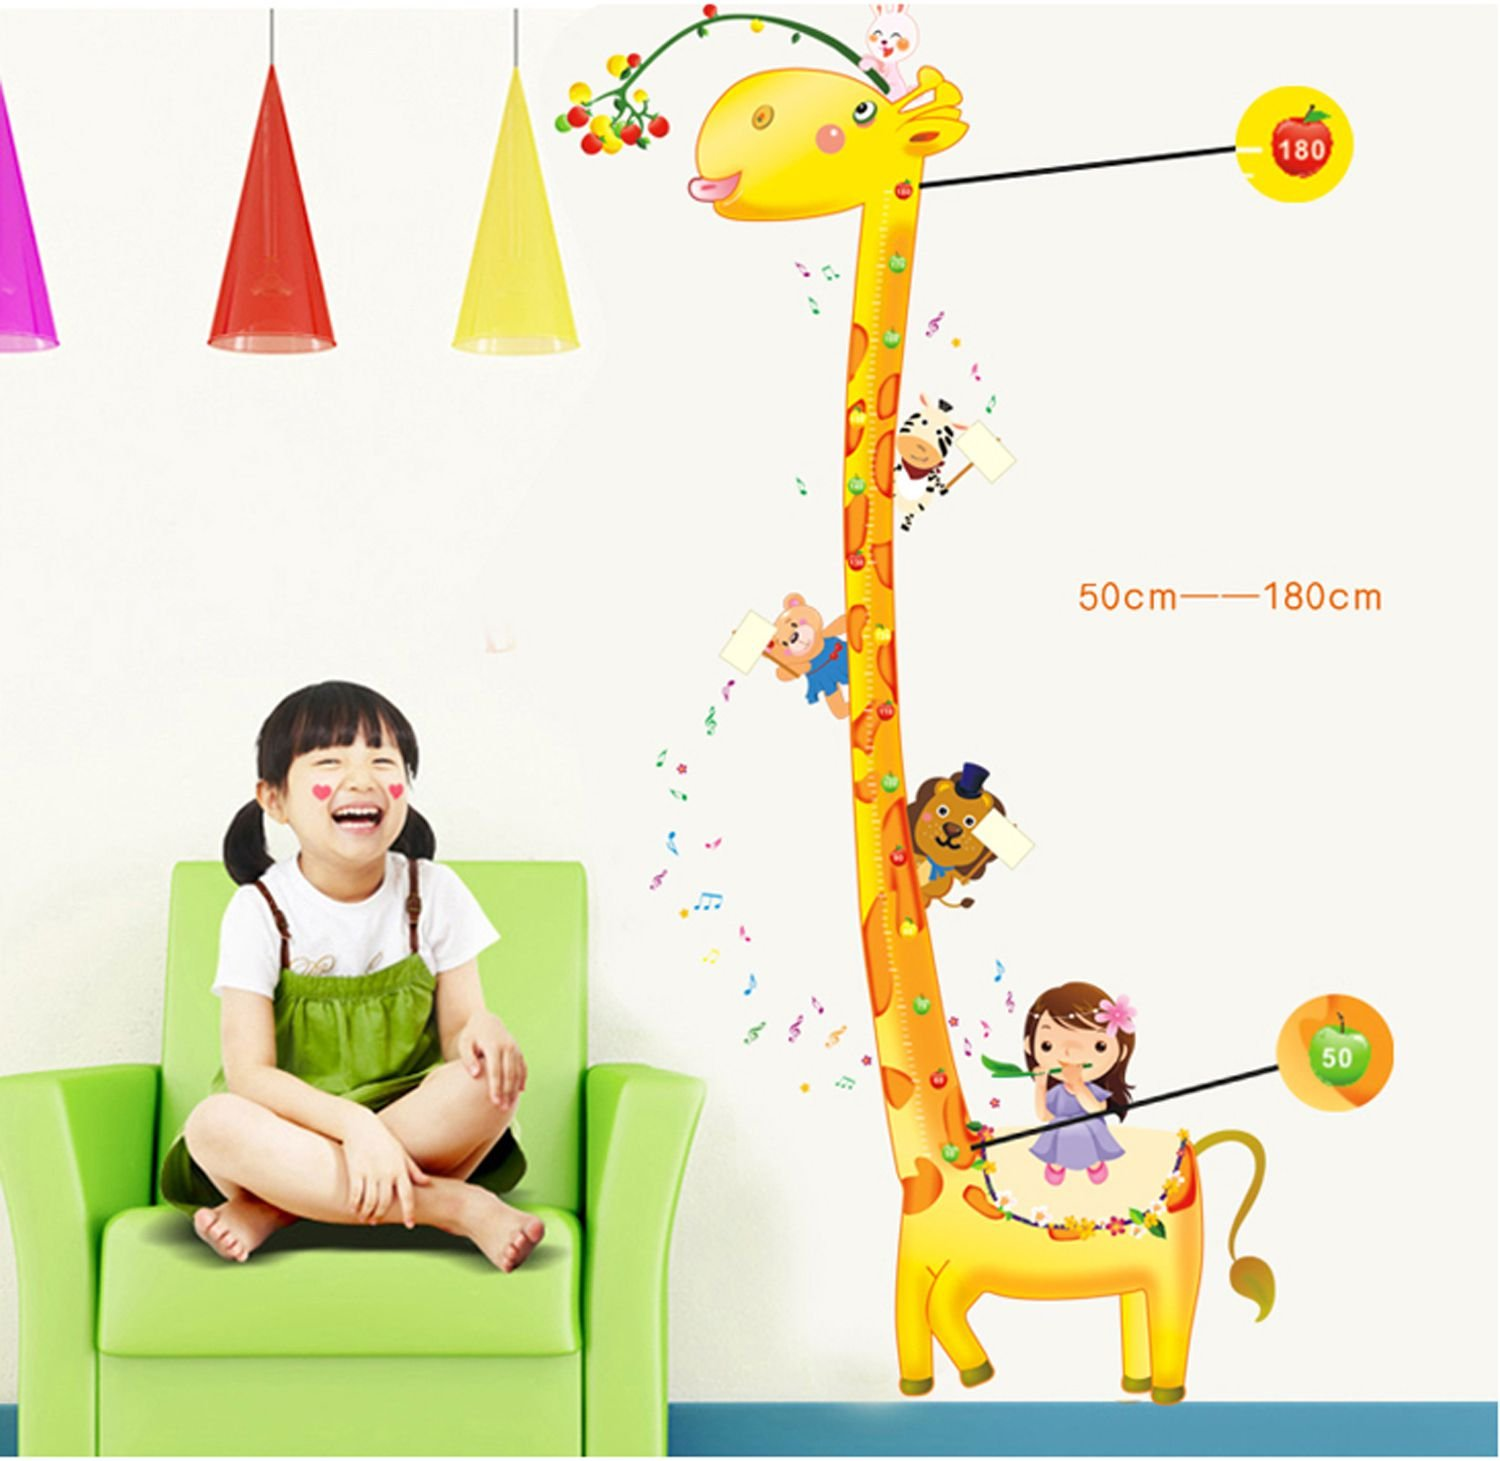 height charts for babies online buy height charts for babies in syga uberlyfe giraffe height measurement growth chart wall sticker pvc vinyl 61 cm x 5 cm x 5 cm